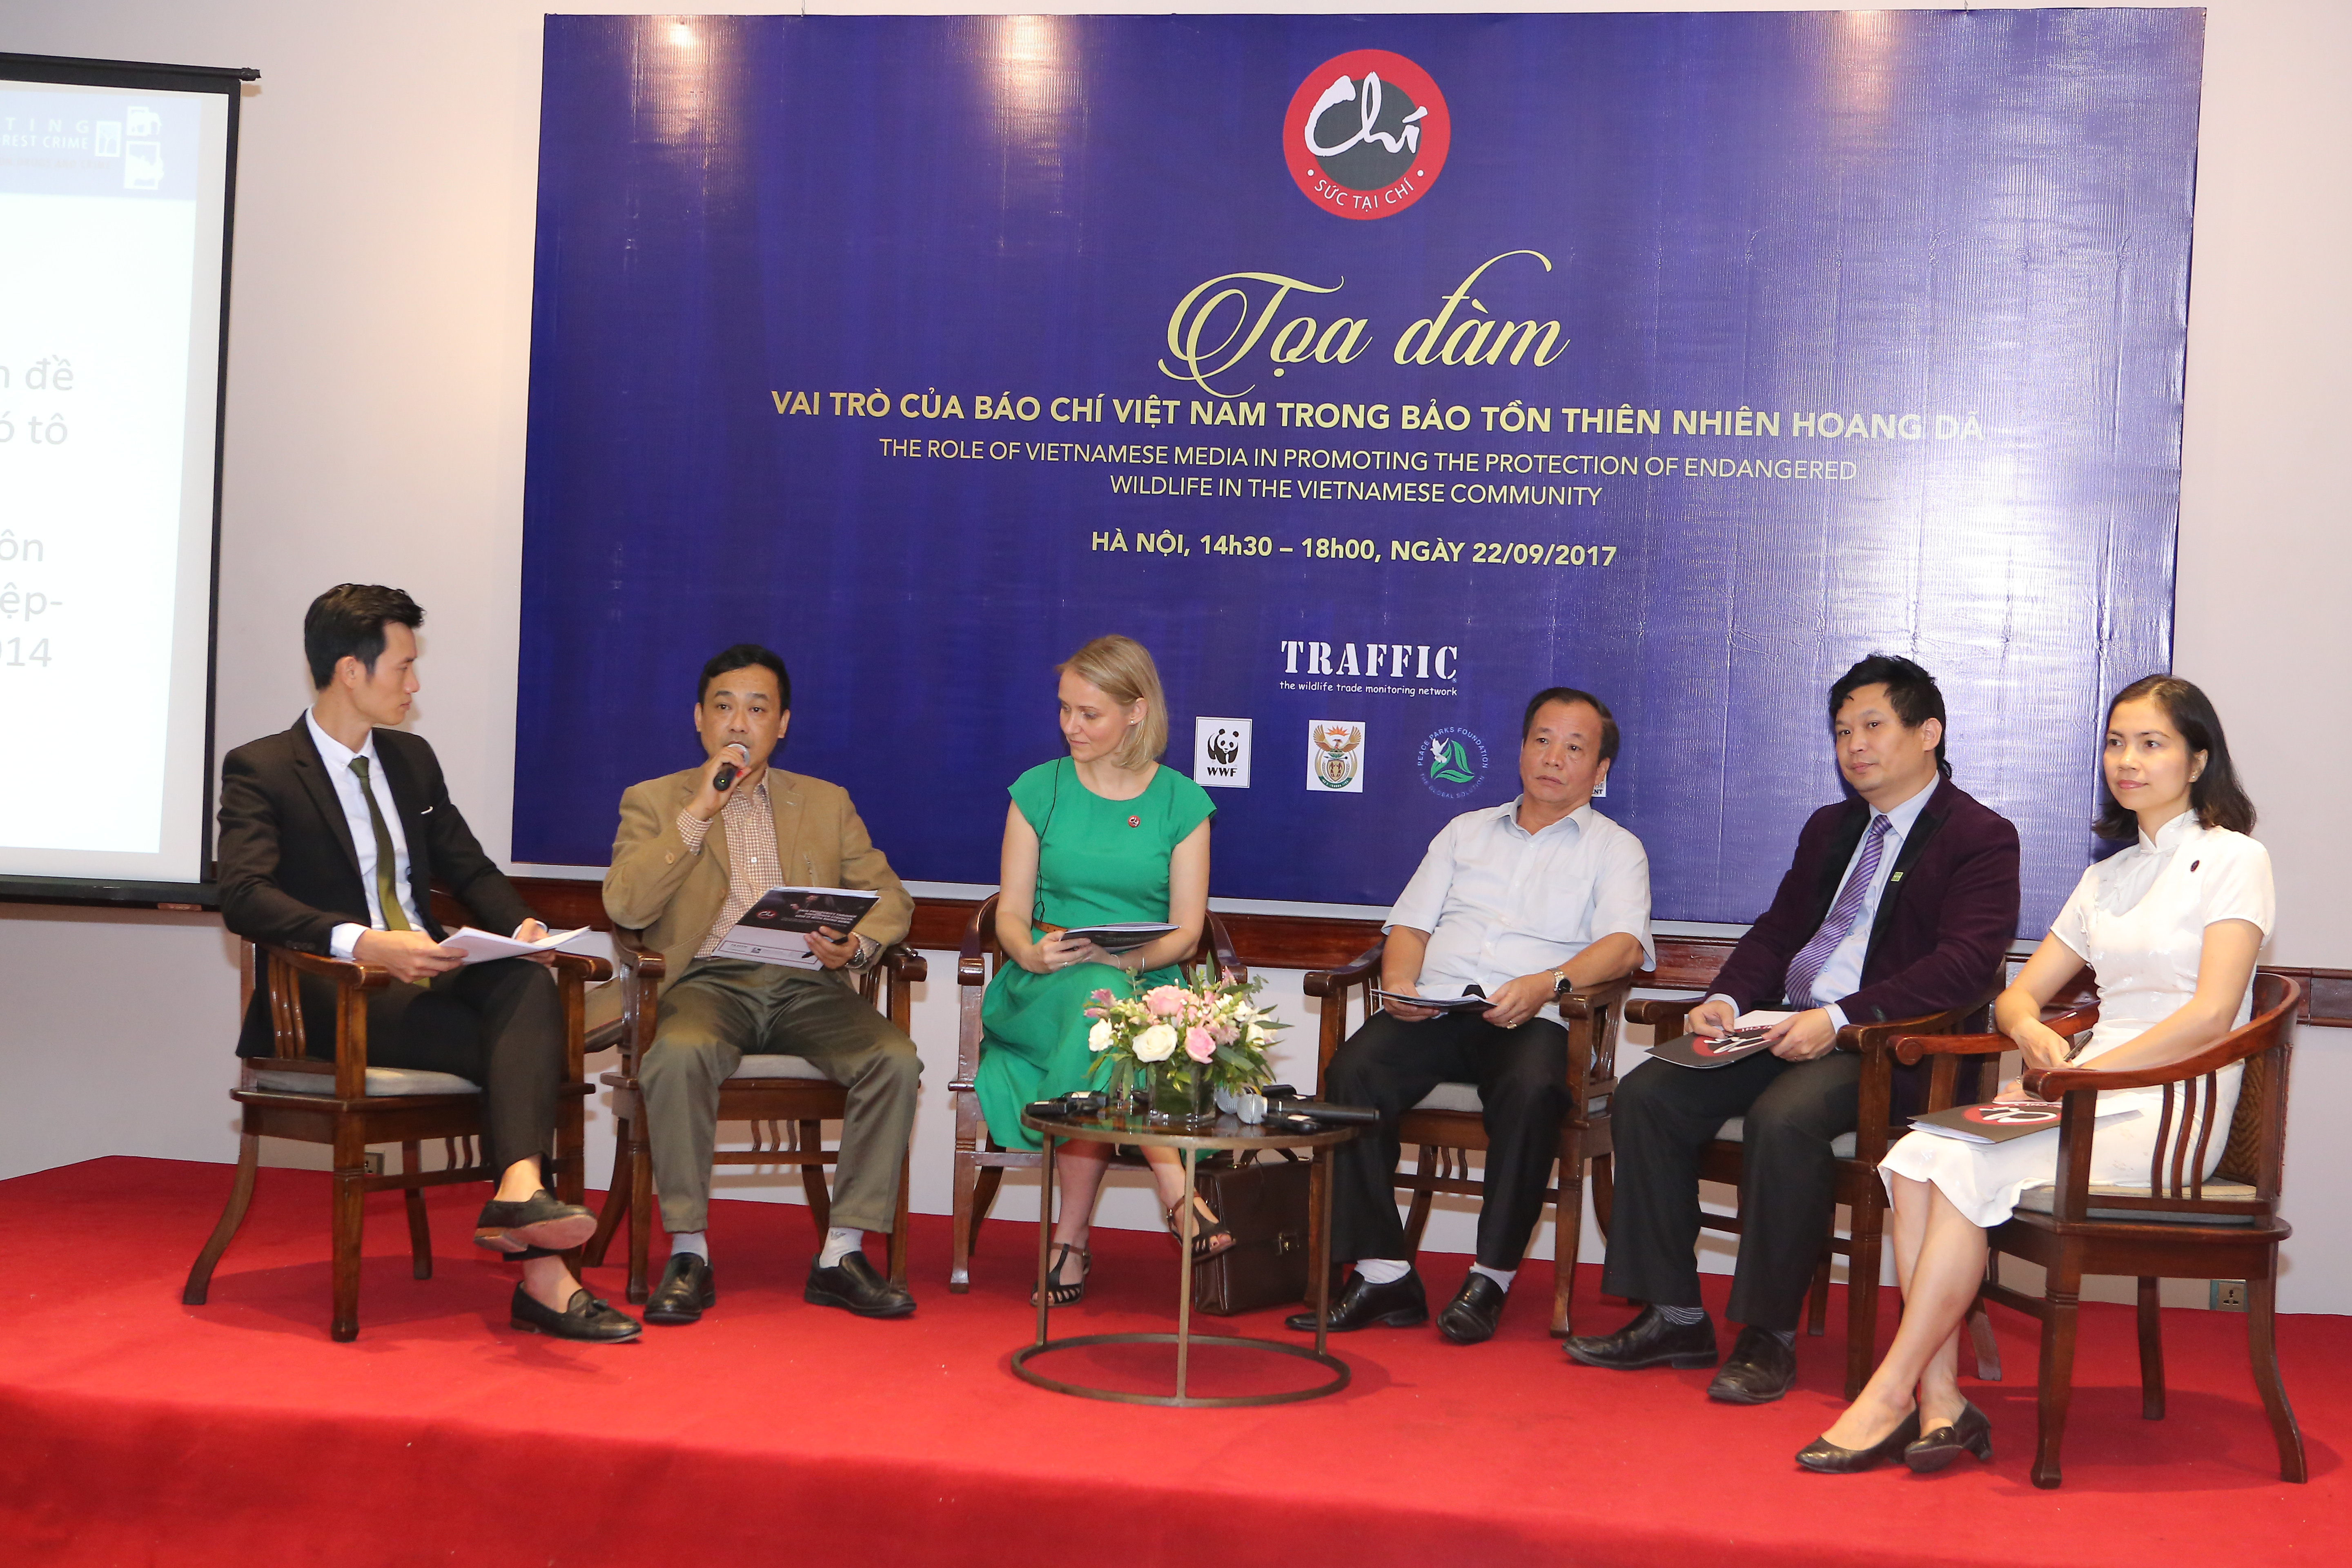 """Vietnamese media to become """"agents of change"""" in efforts to deter wildlife crime"""